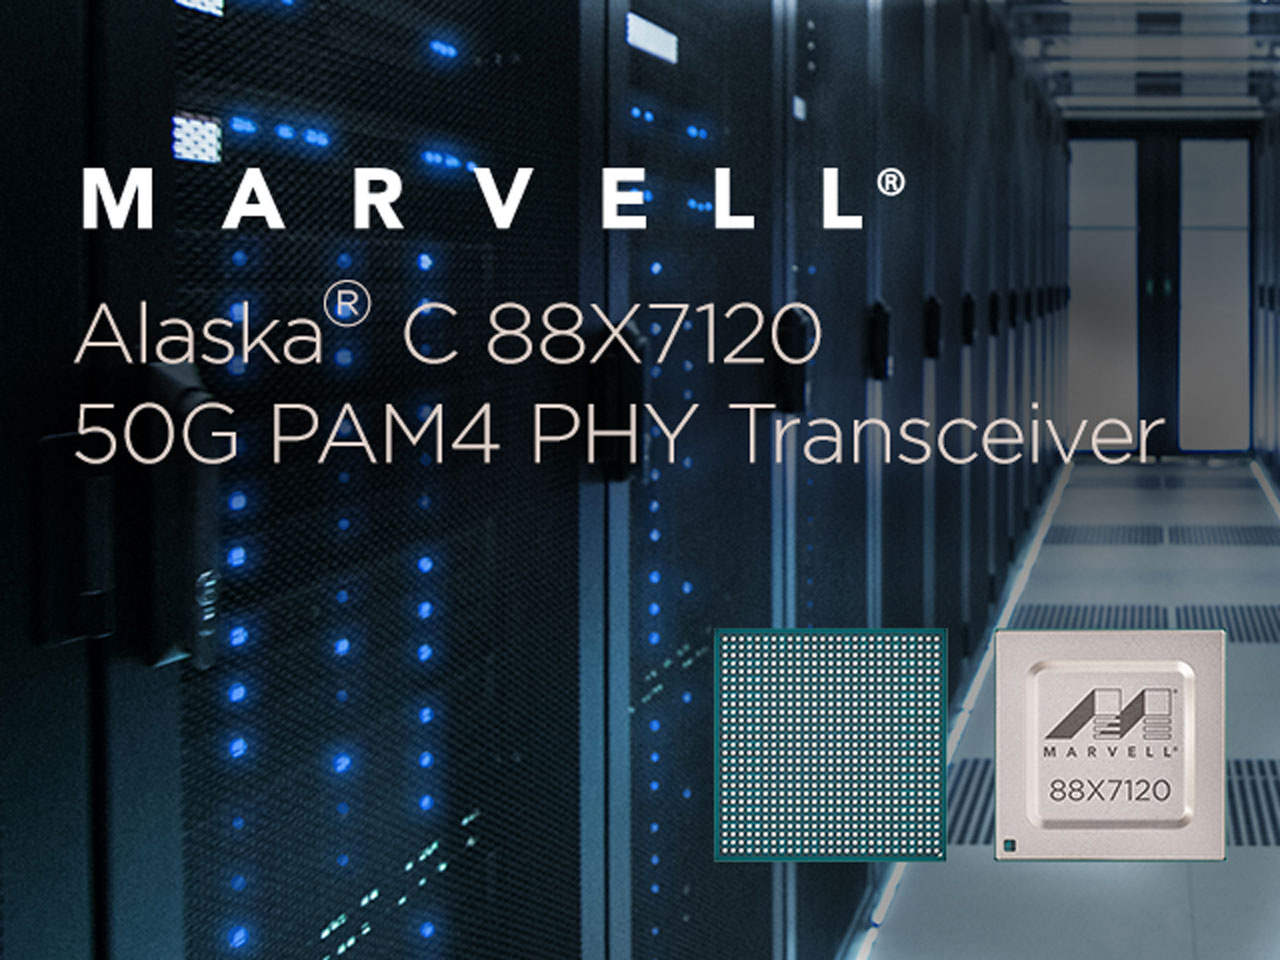 Marvell Alaska® C 88X7120 16-port 50G Ethernet physical layer transceiver is fully compliant with new IEEE 802.3cd and 802.3bs standards and aims at high density data center connectivity